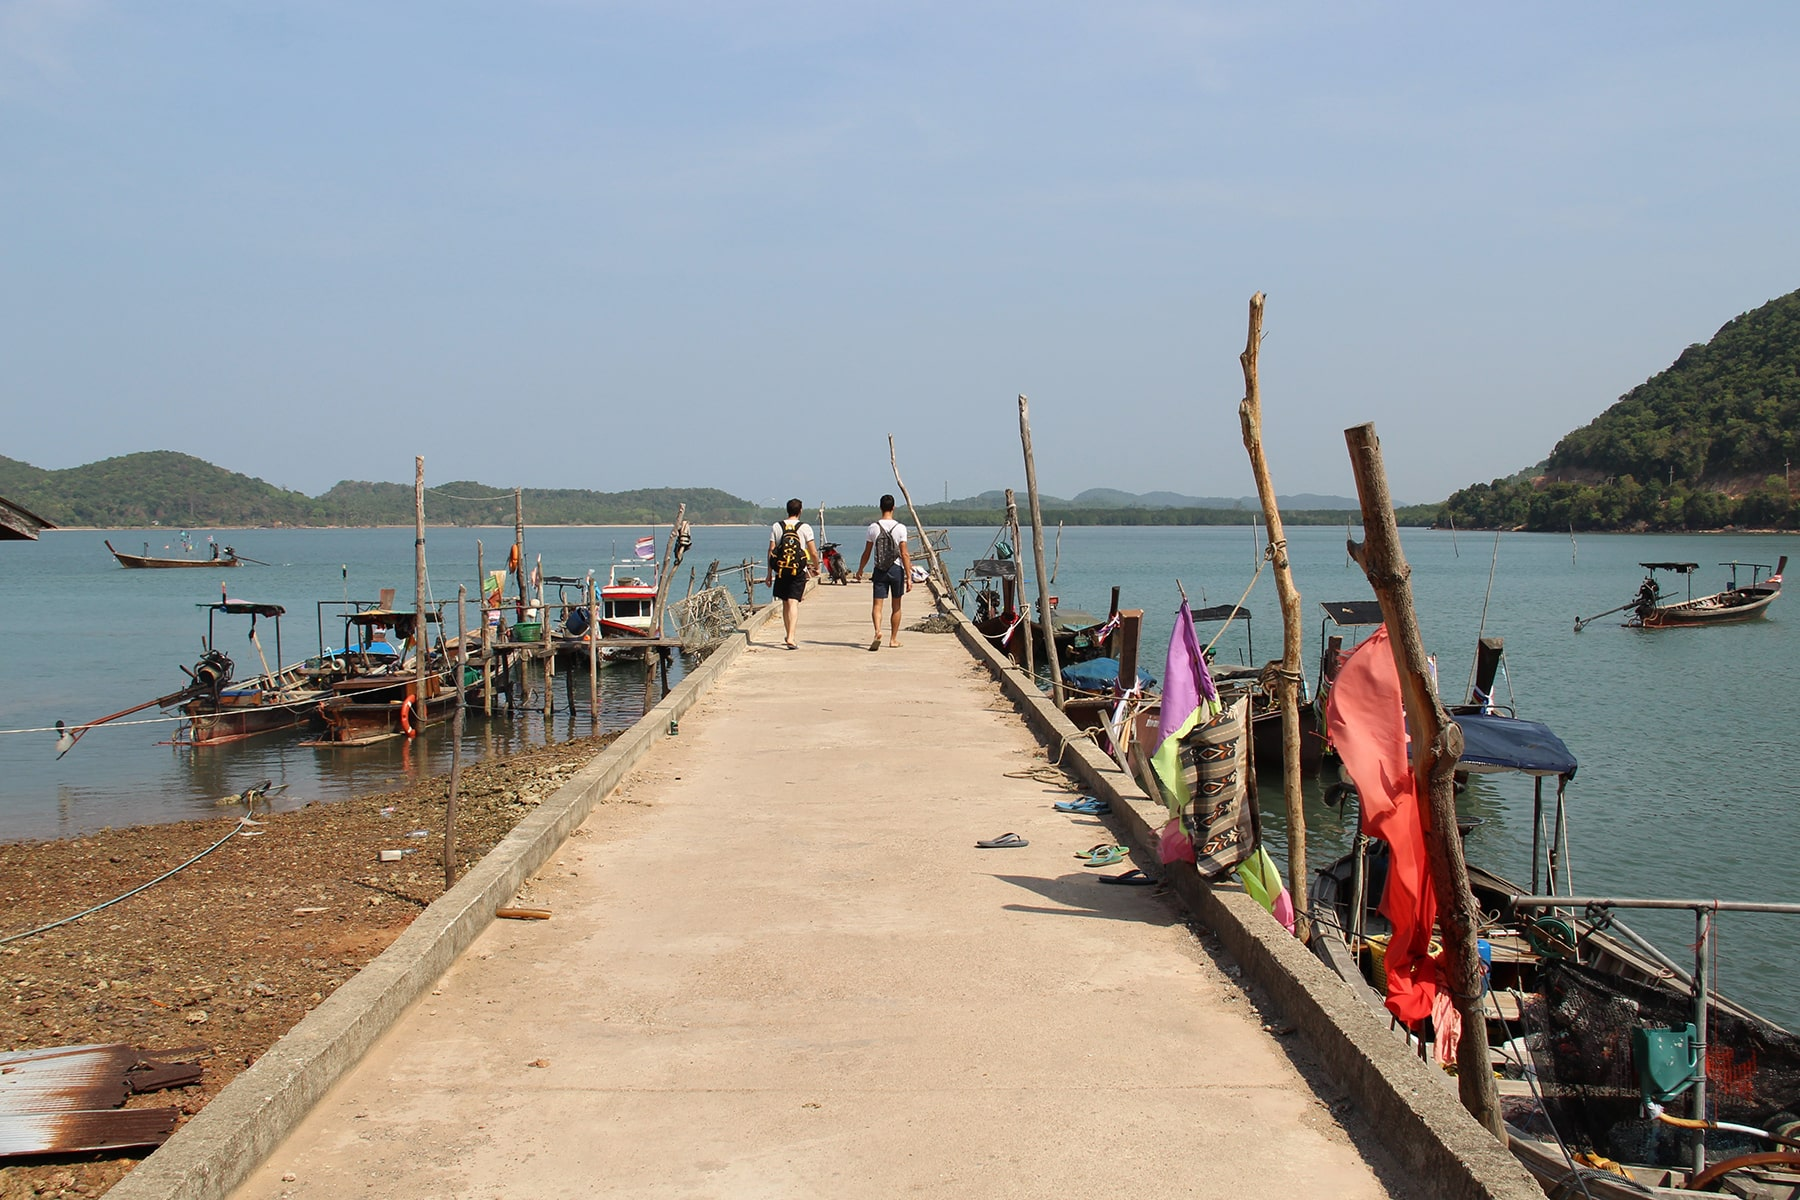 Harbour dock of Koh Yao Yai fishermen's village